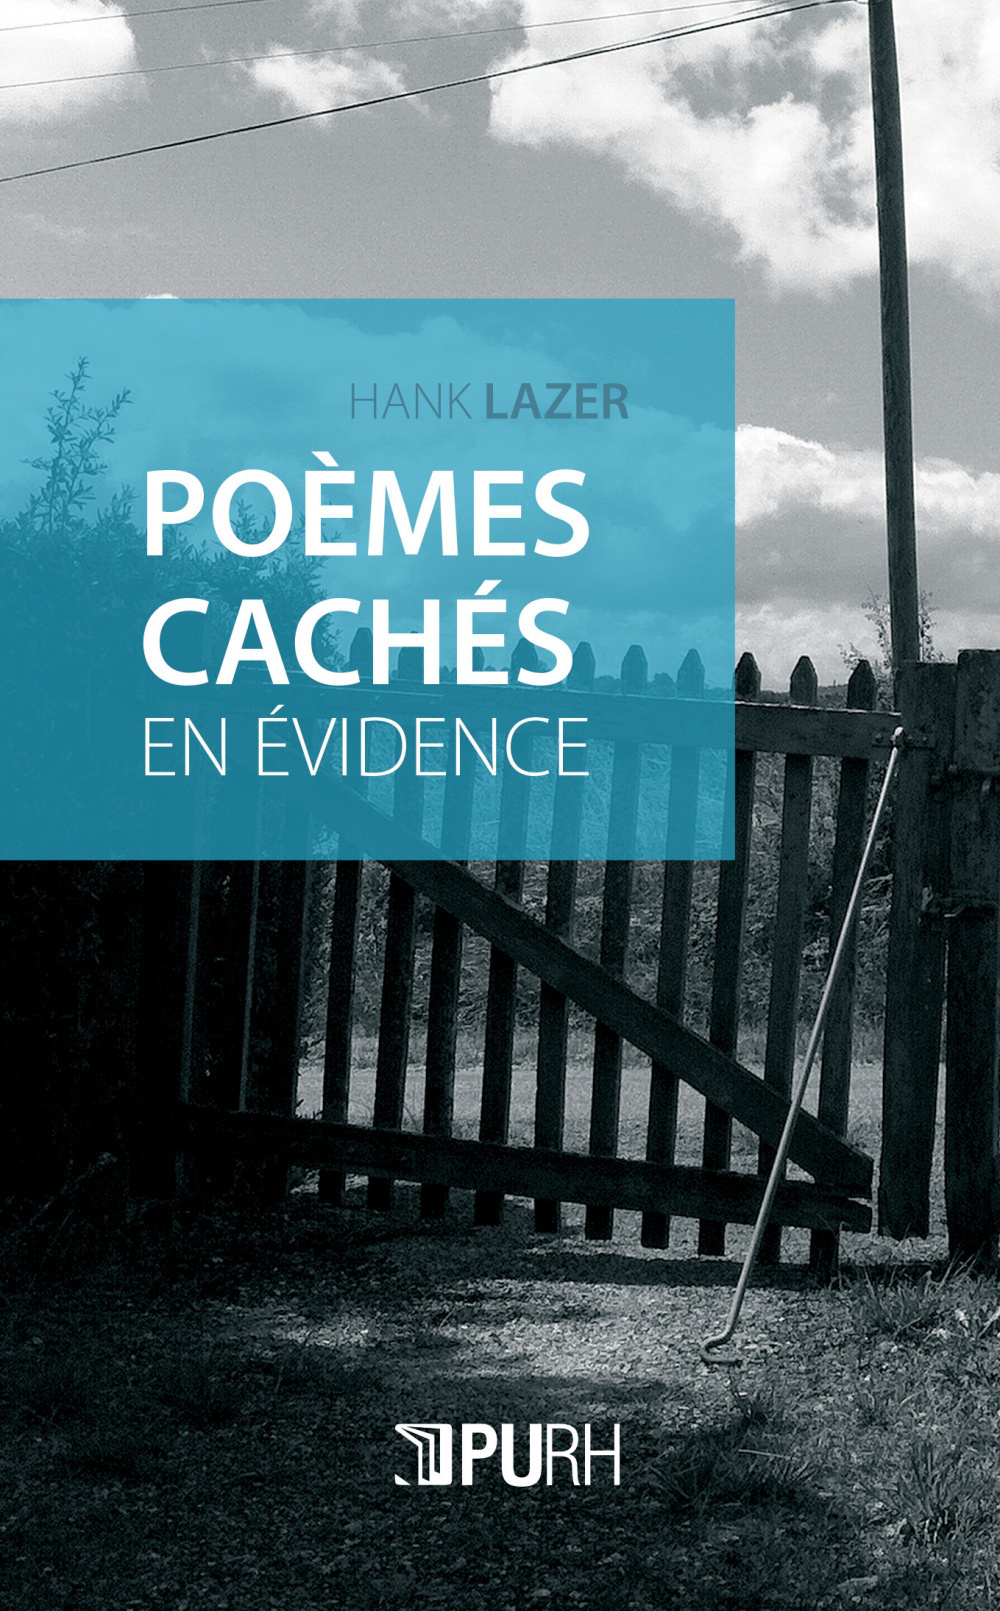 POEMES CACHES EN EVIDENCE